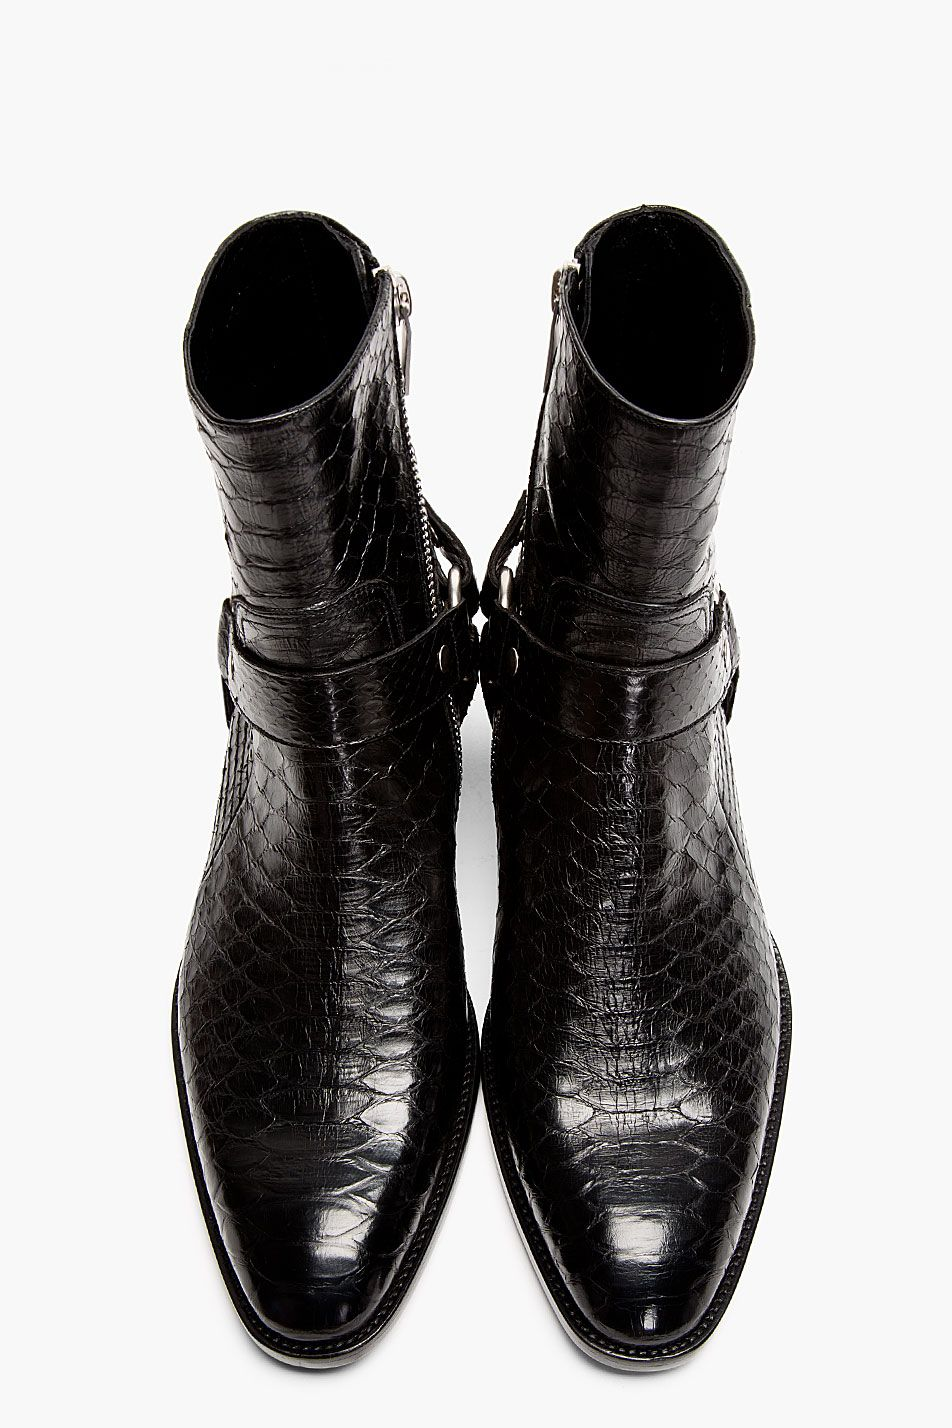 Men s Fashion  good to have - SAINT LAURENT Black Pythonskin Wyatt Harness  Biker Boots 6b3b39ef7e